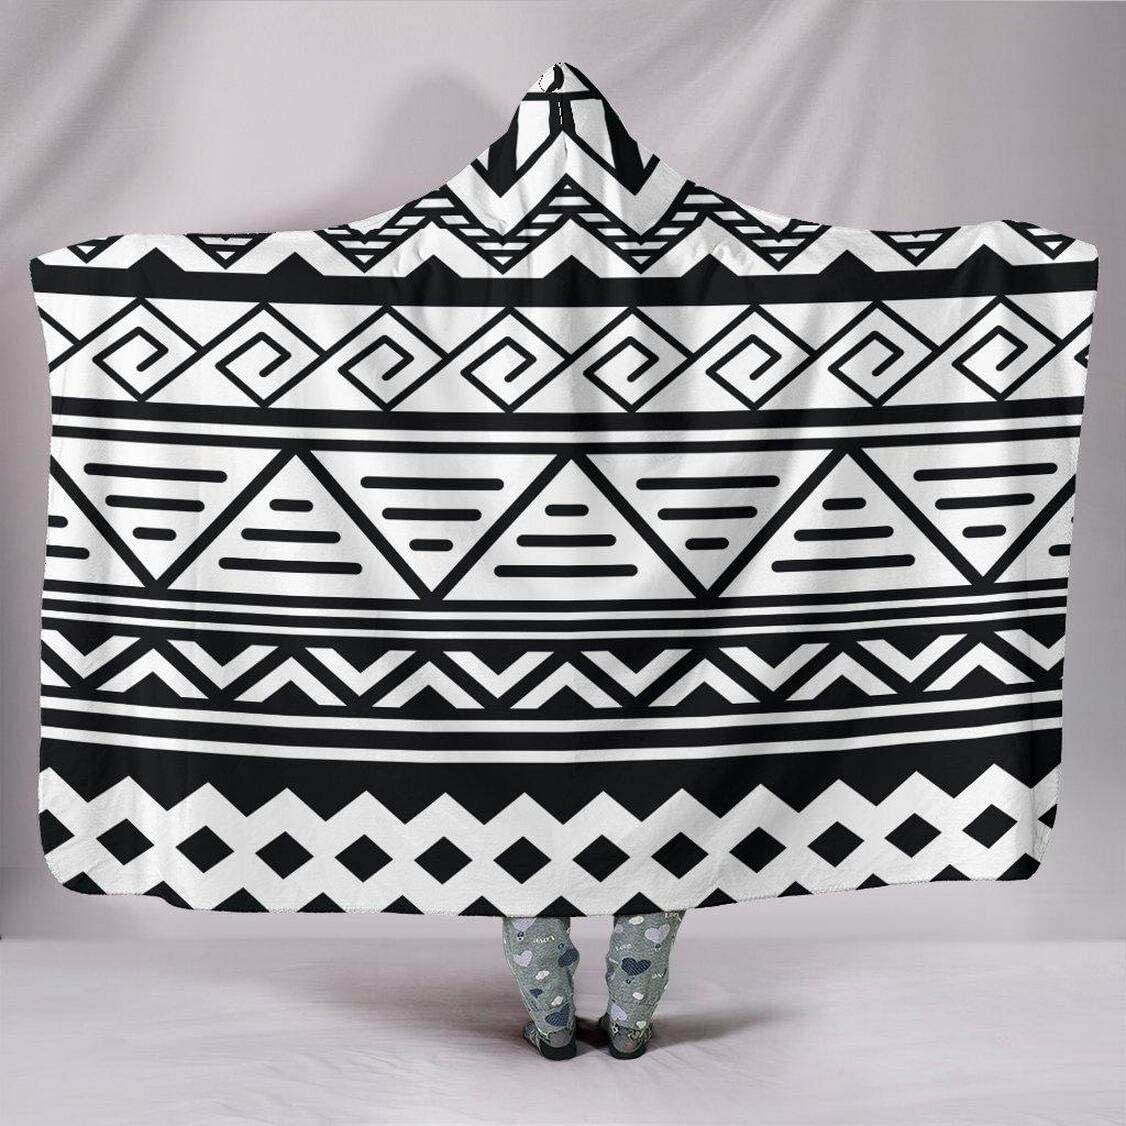 Personalized Customise Latest item Hoodie San Diego Mall Blanket Pattern Tribal Blank White